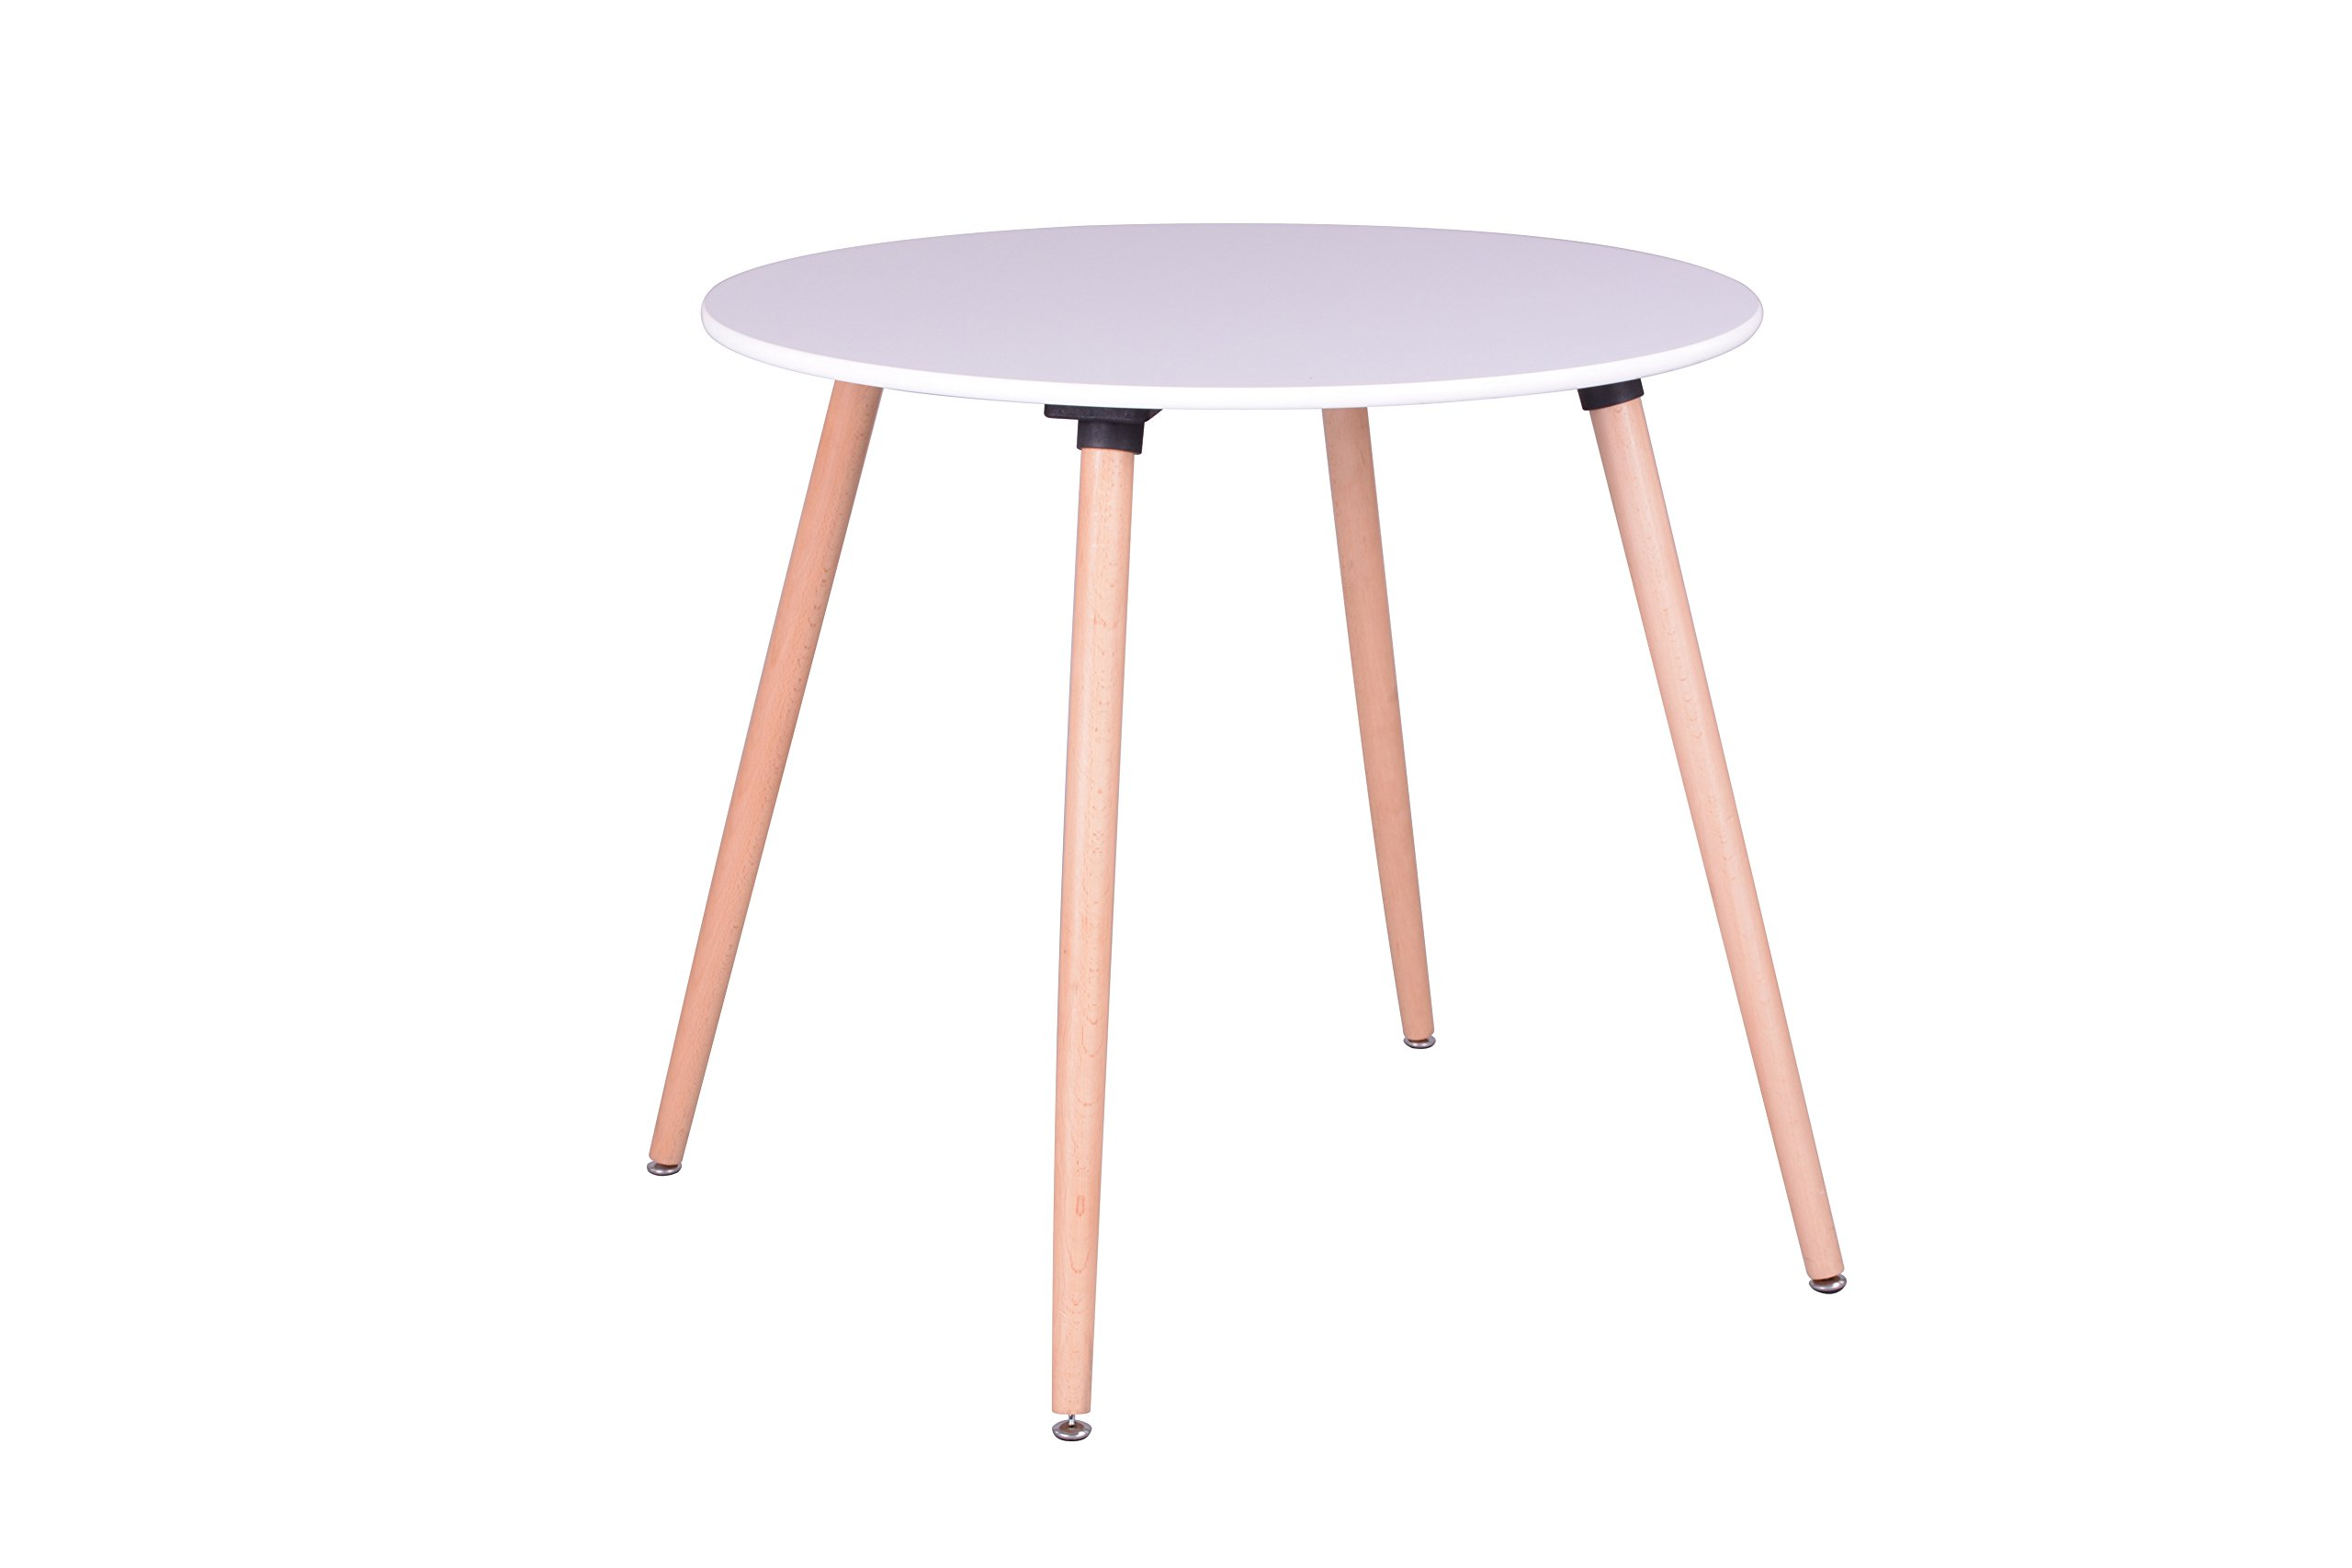 White Finish Top Steel Legs in Natural Color Round Dining Table - Mid Century Style (Table only)